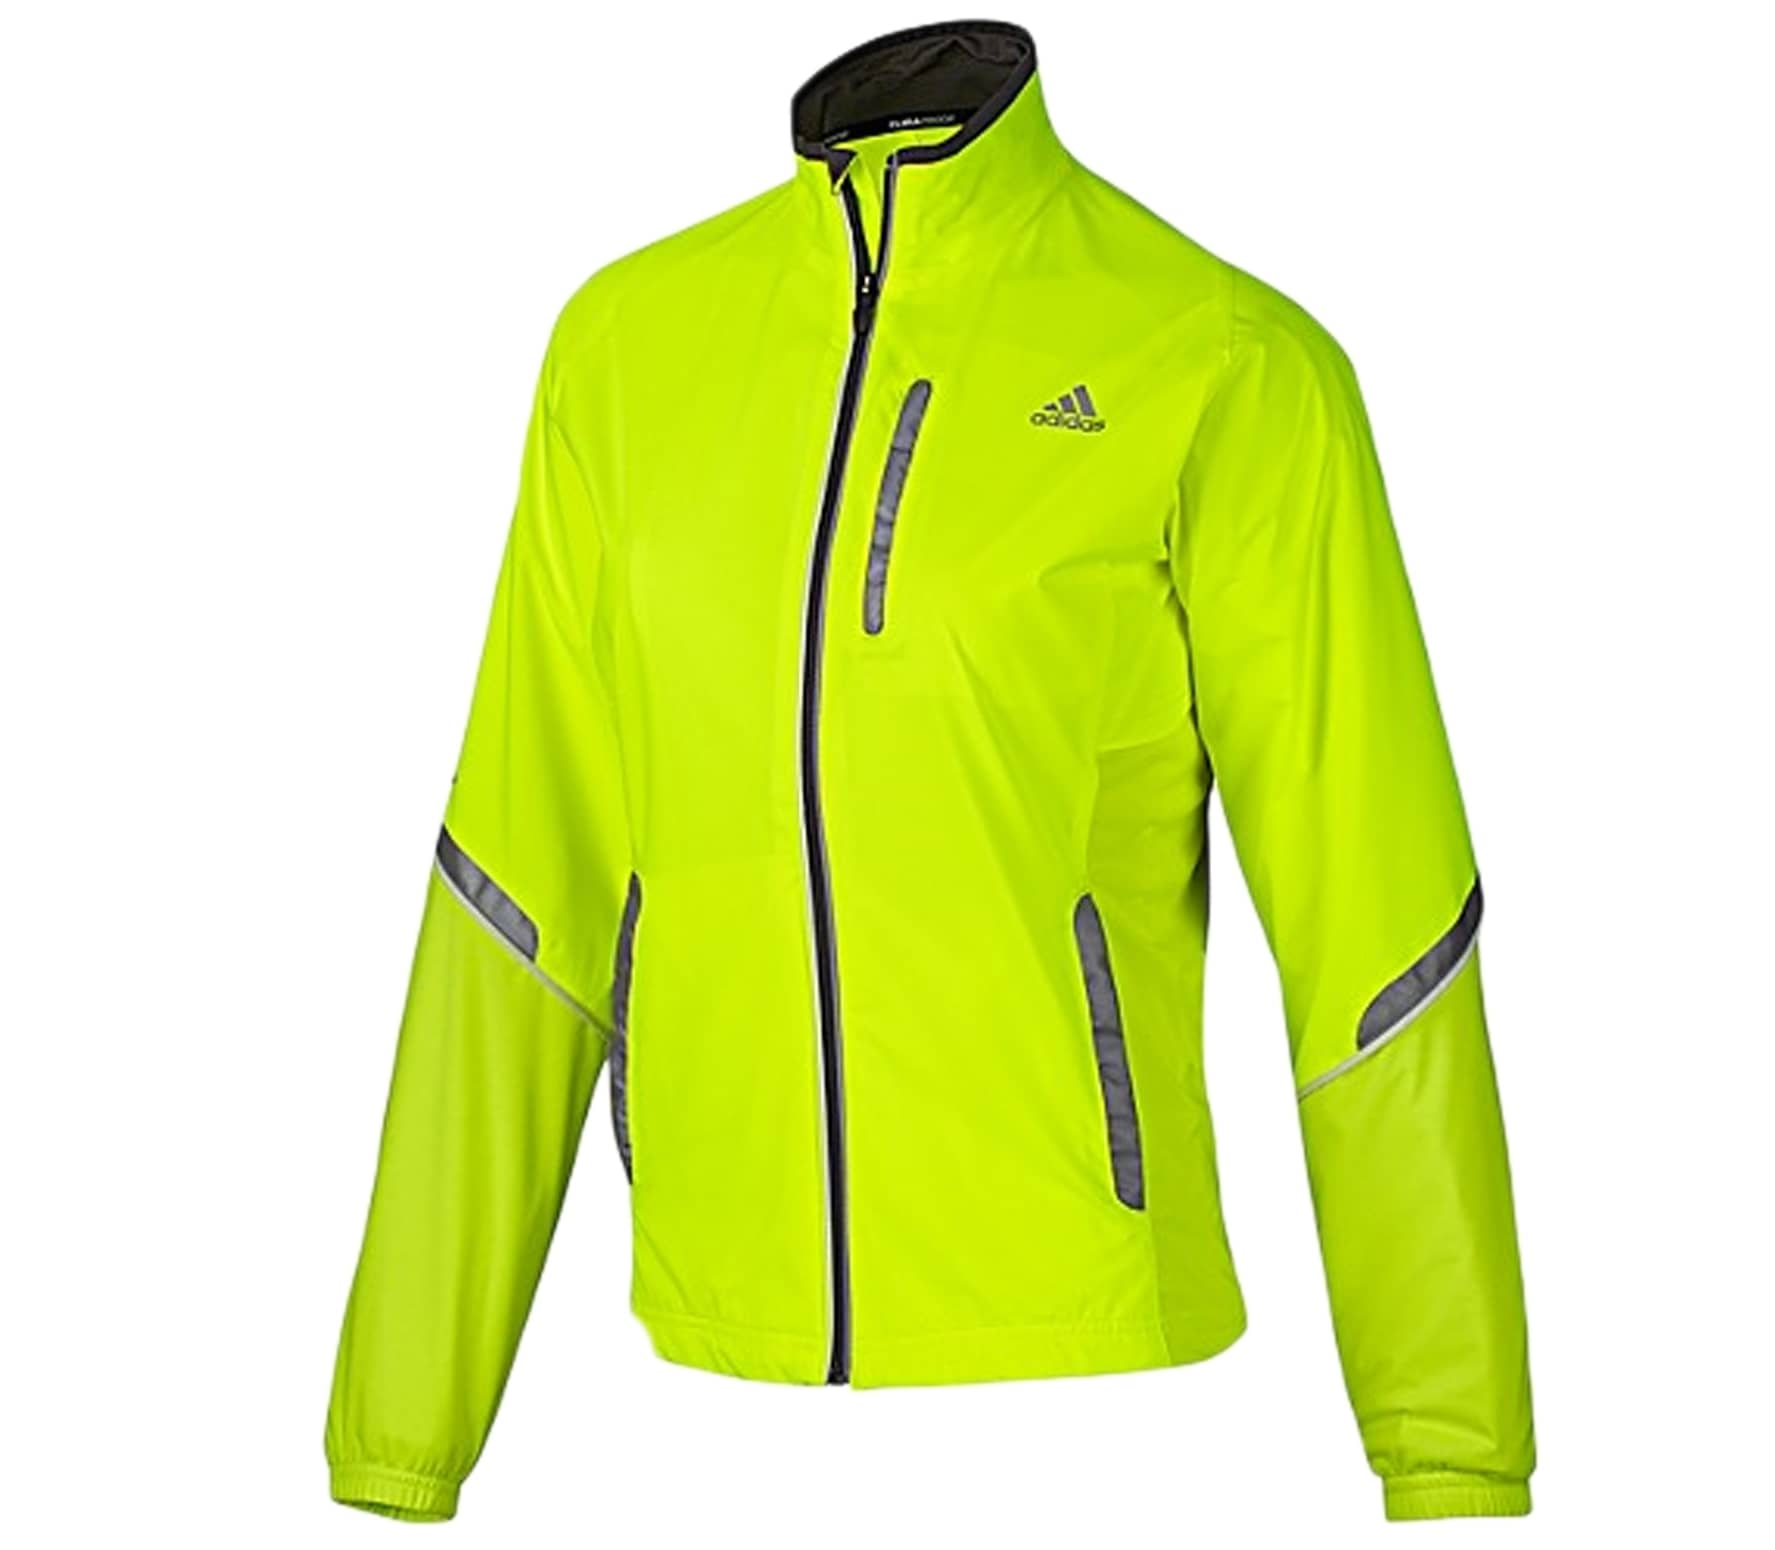 4099be0355d Panier Baskets Veste Réduction Adiviz Bio Authentique Adidas 1xBnAw8v